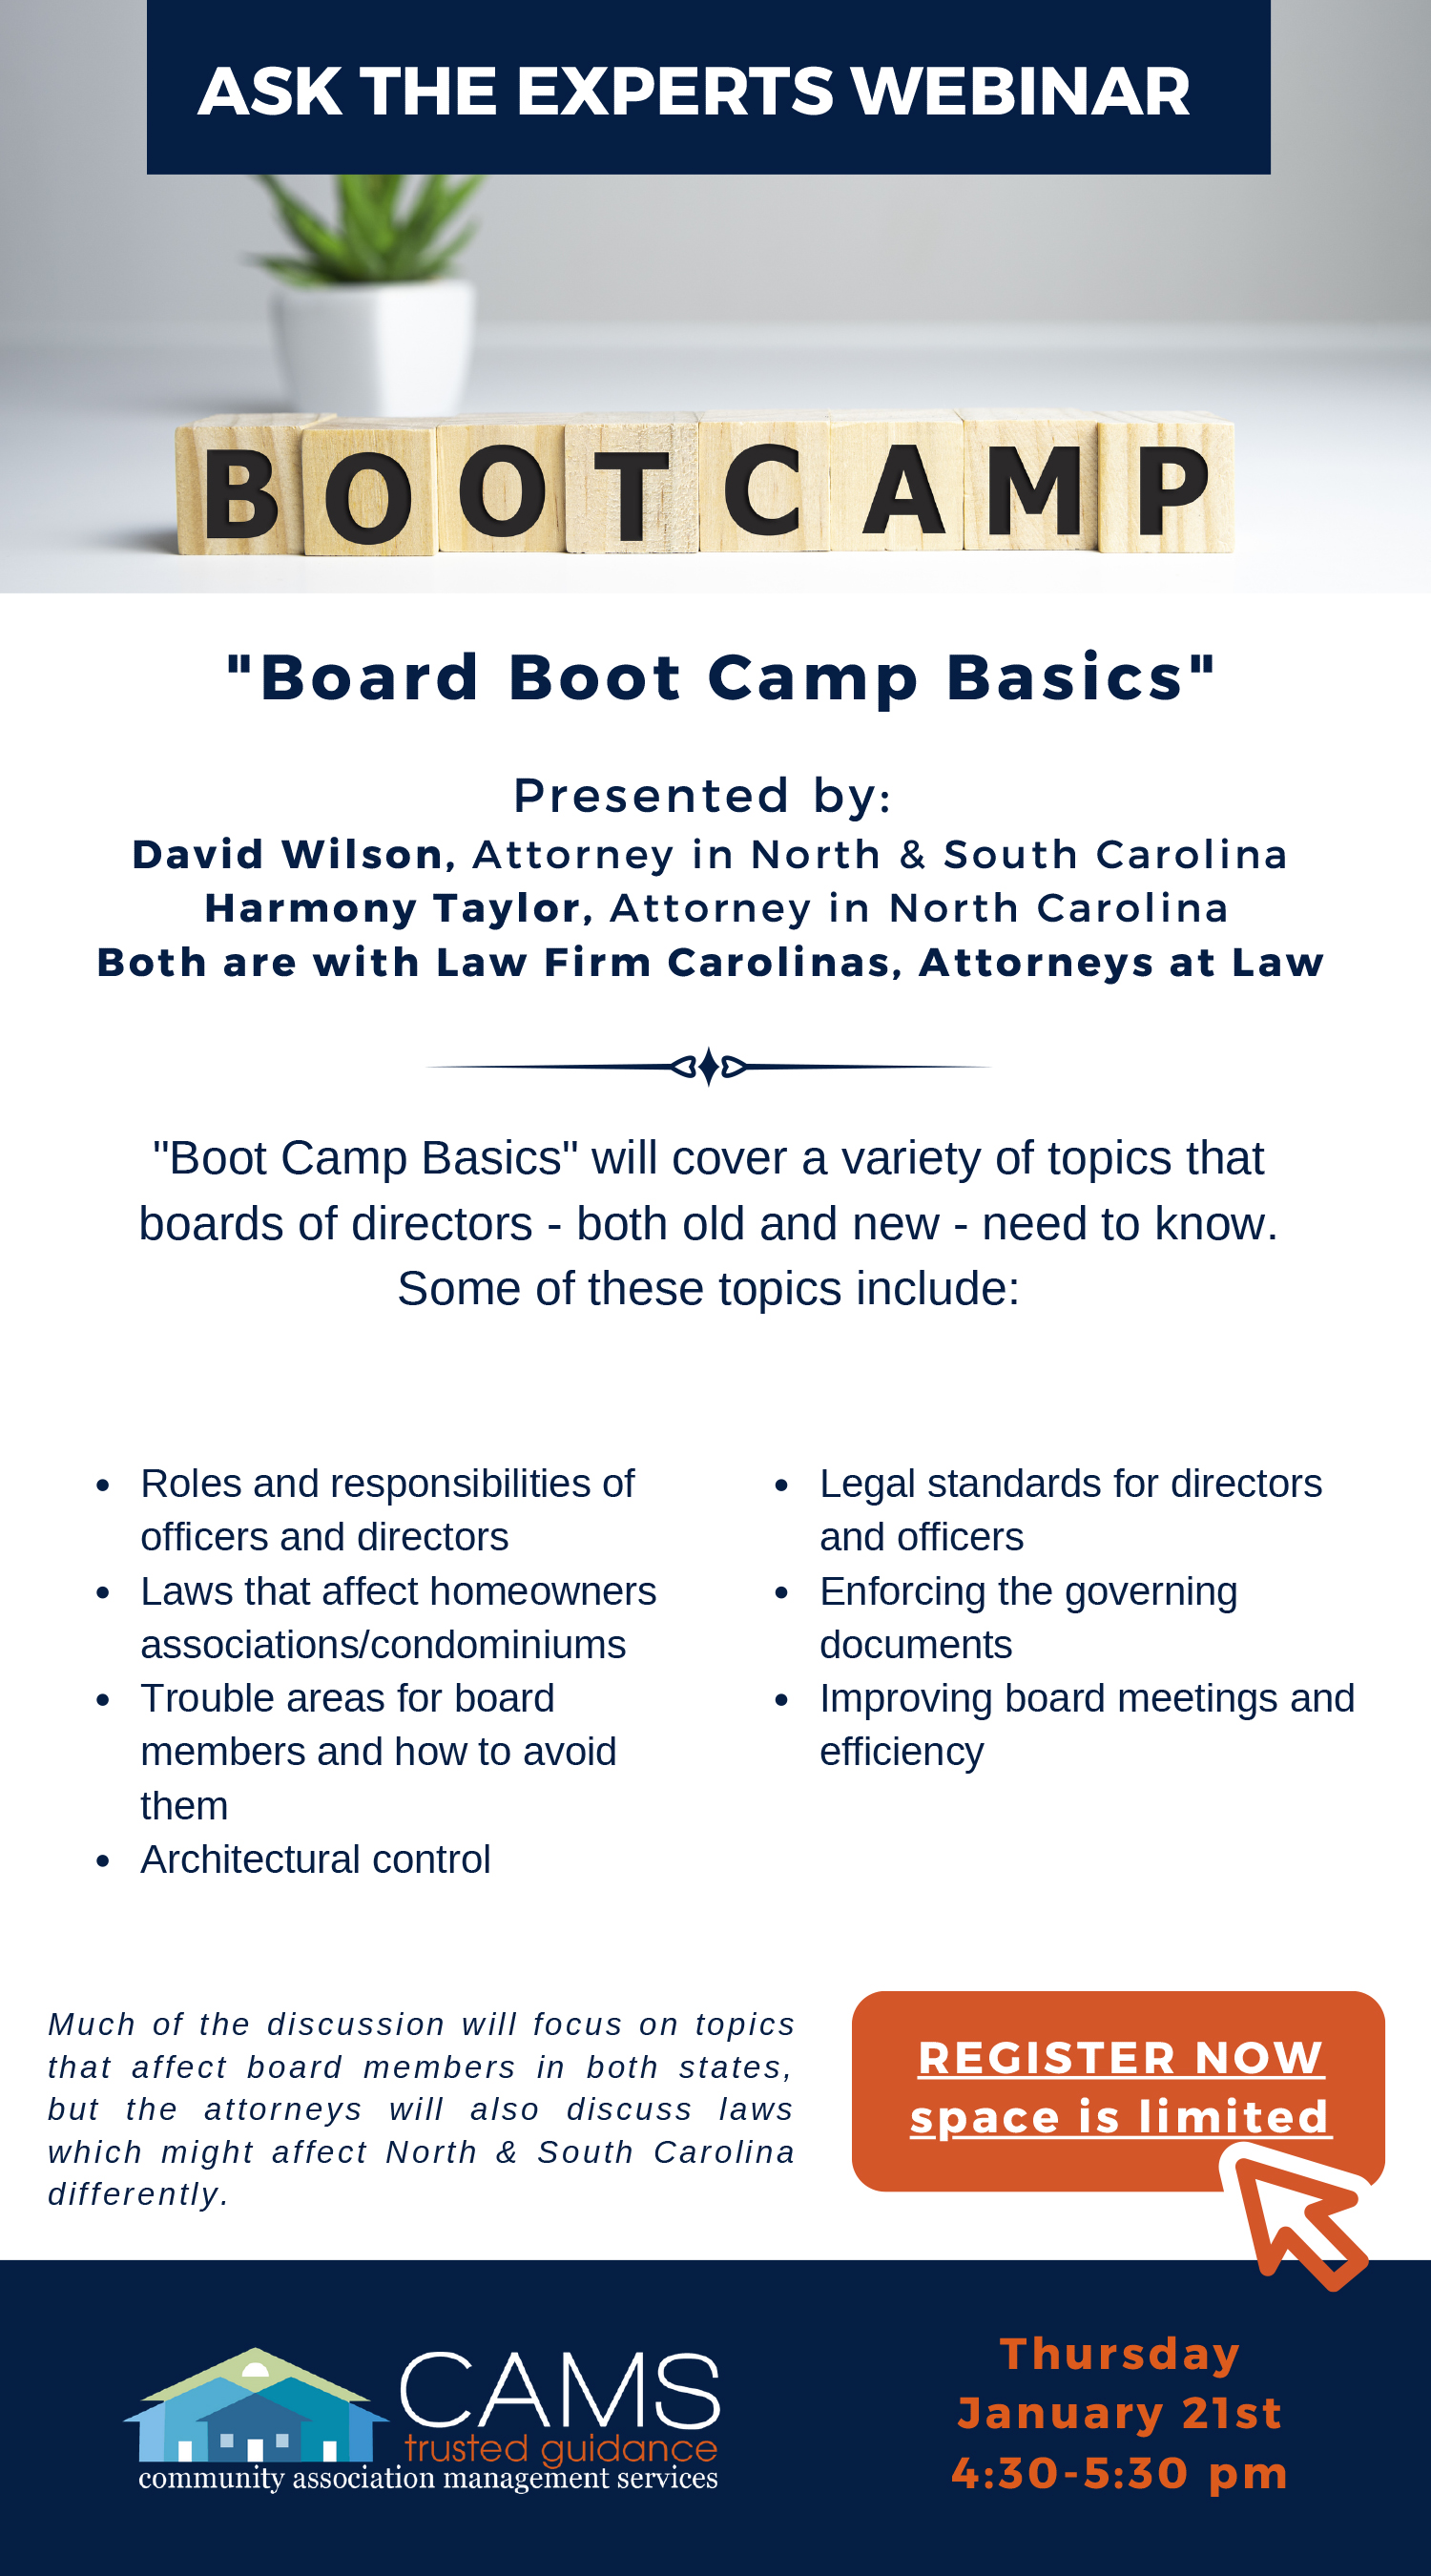 Board Boot Camp Basics